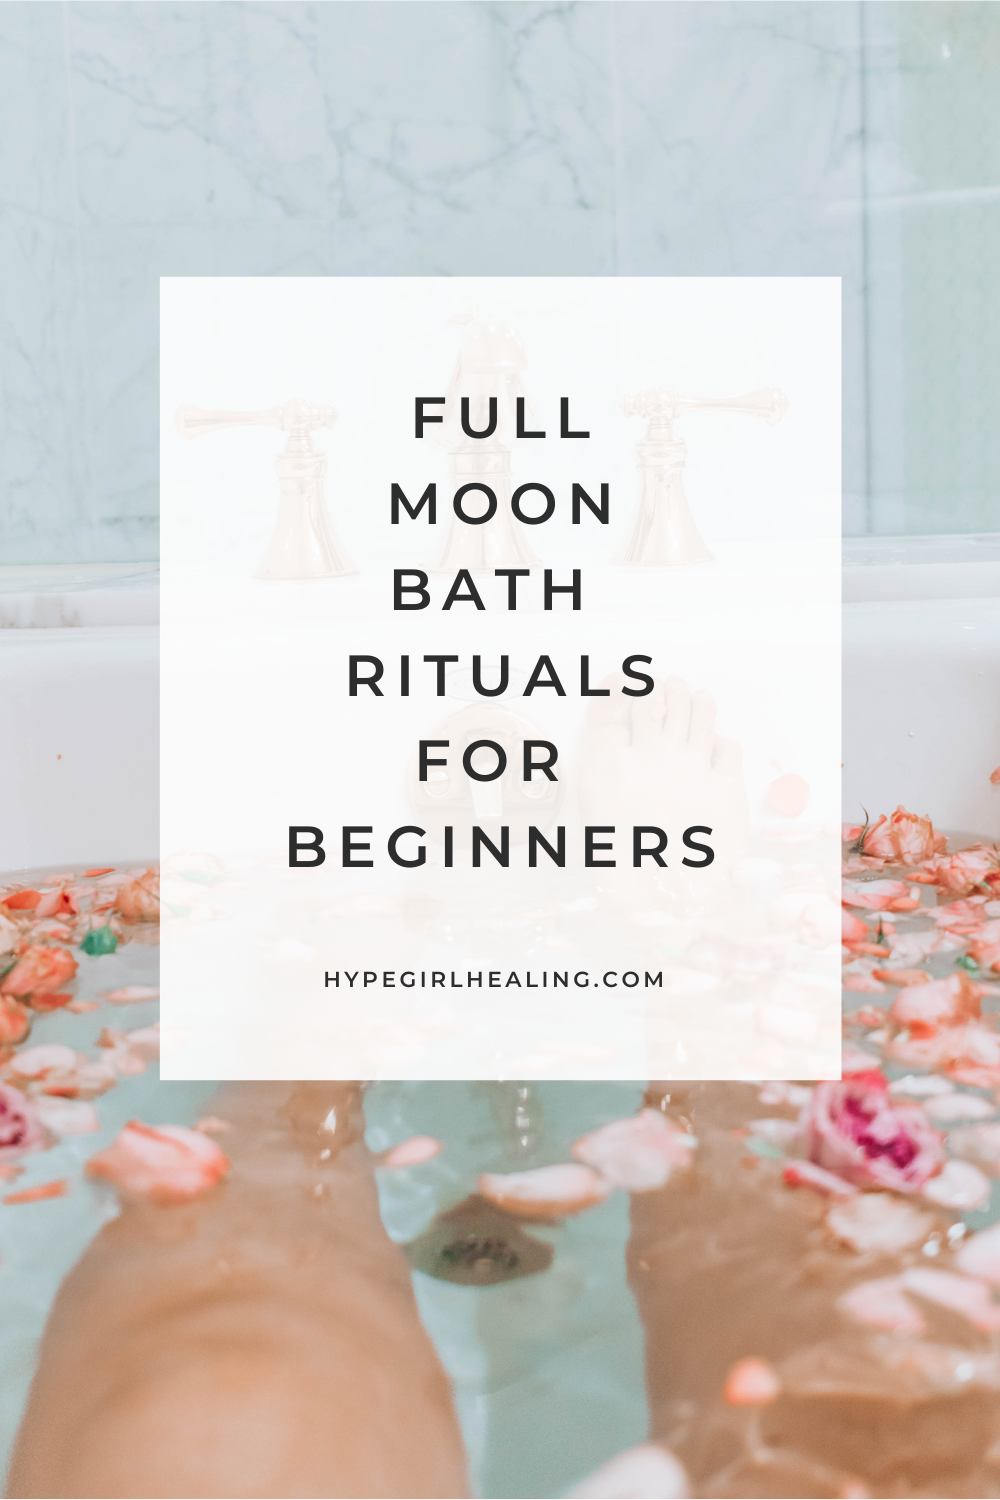 bath with legs from the knees down with pink petals for full moon bath ritual